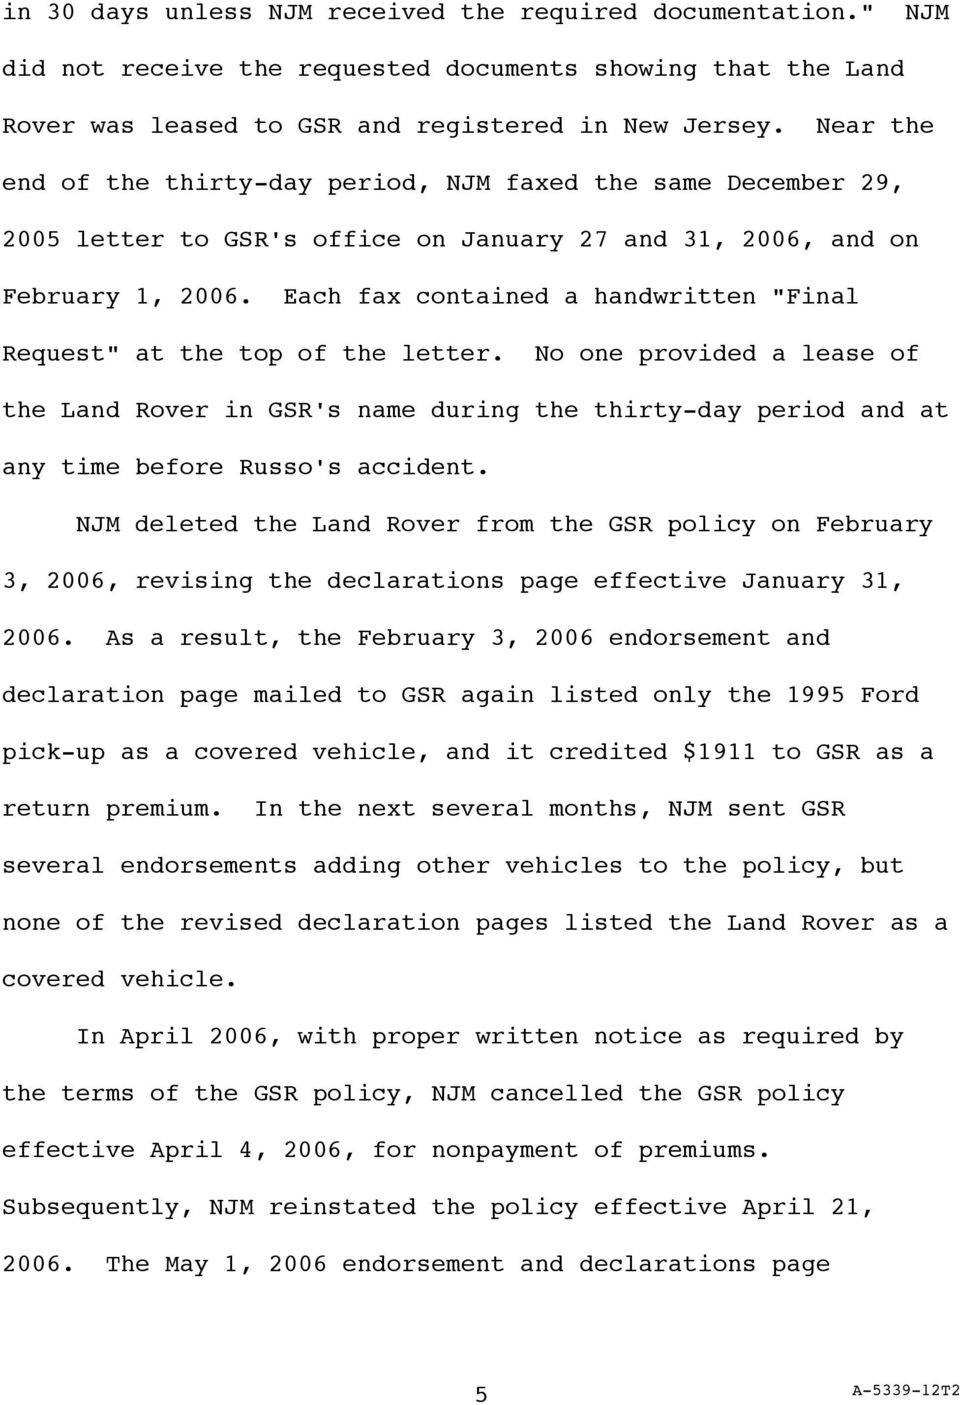 "Each fax contained a handwritten ""Final Request"" at the top of the letter. No one provided a lease of the Land Rover in GSR's name during the thirty-day period and at any time before Russo's accident."